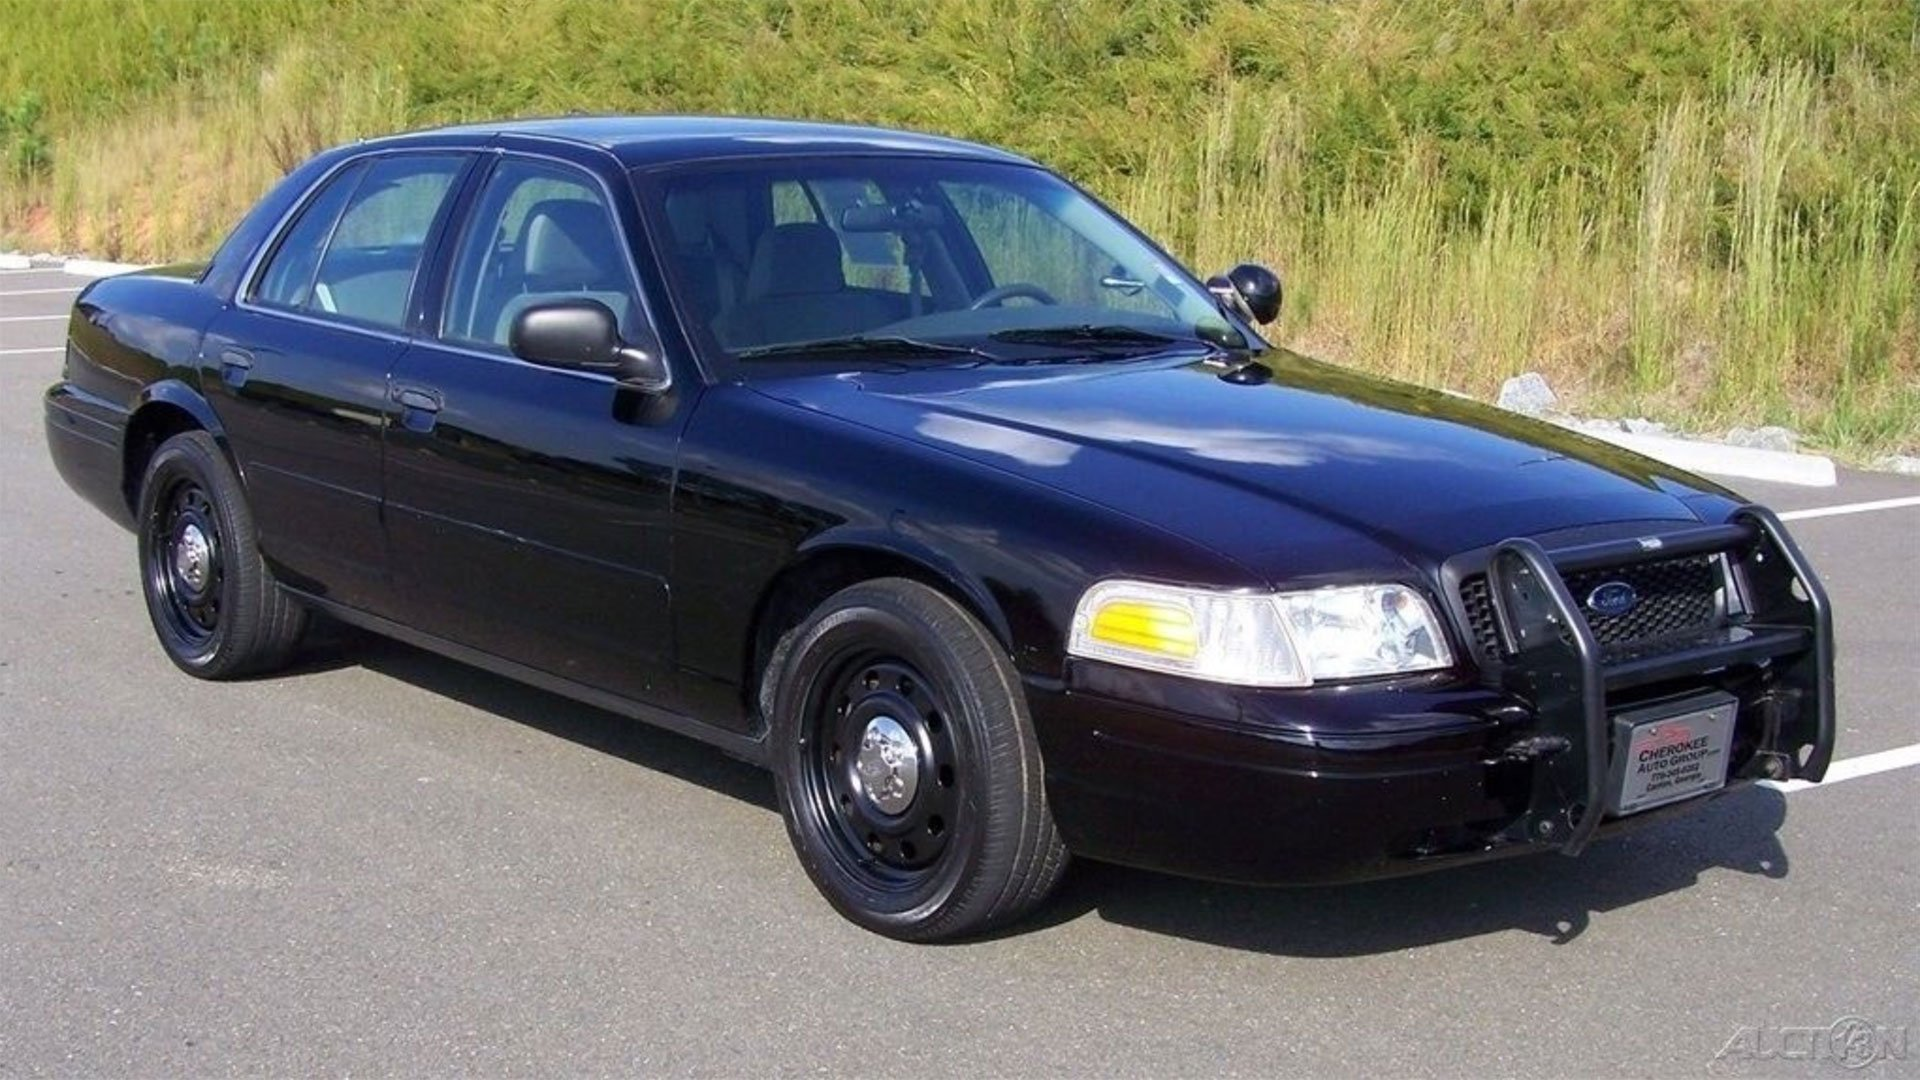 Best Of Police Interceptor Cars for Sale Near Me